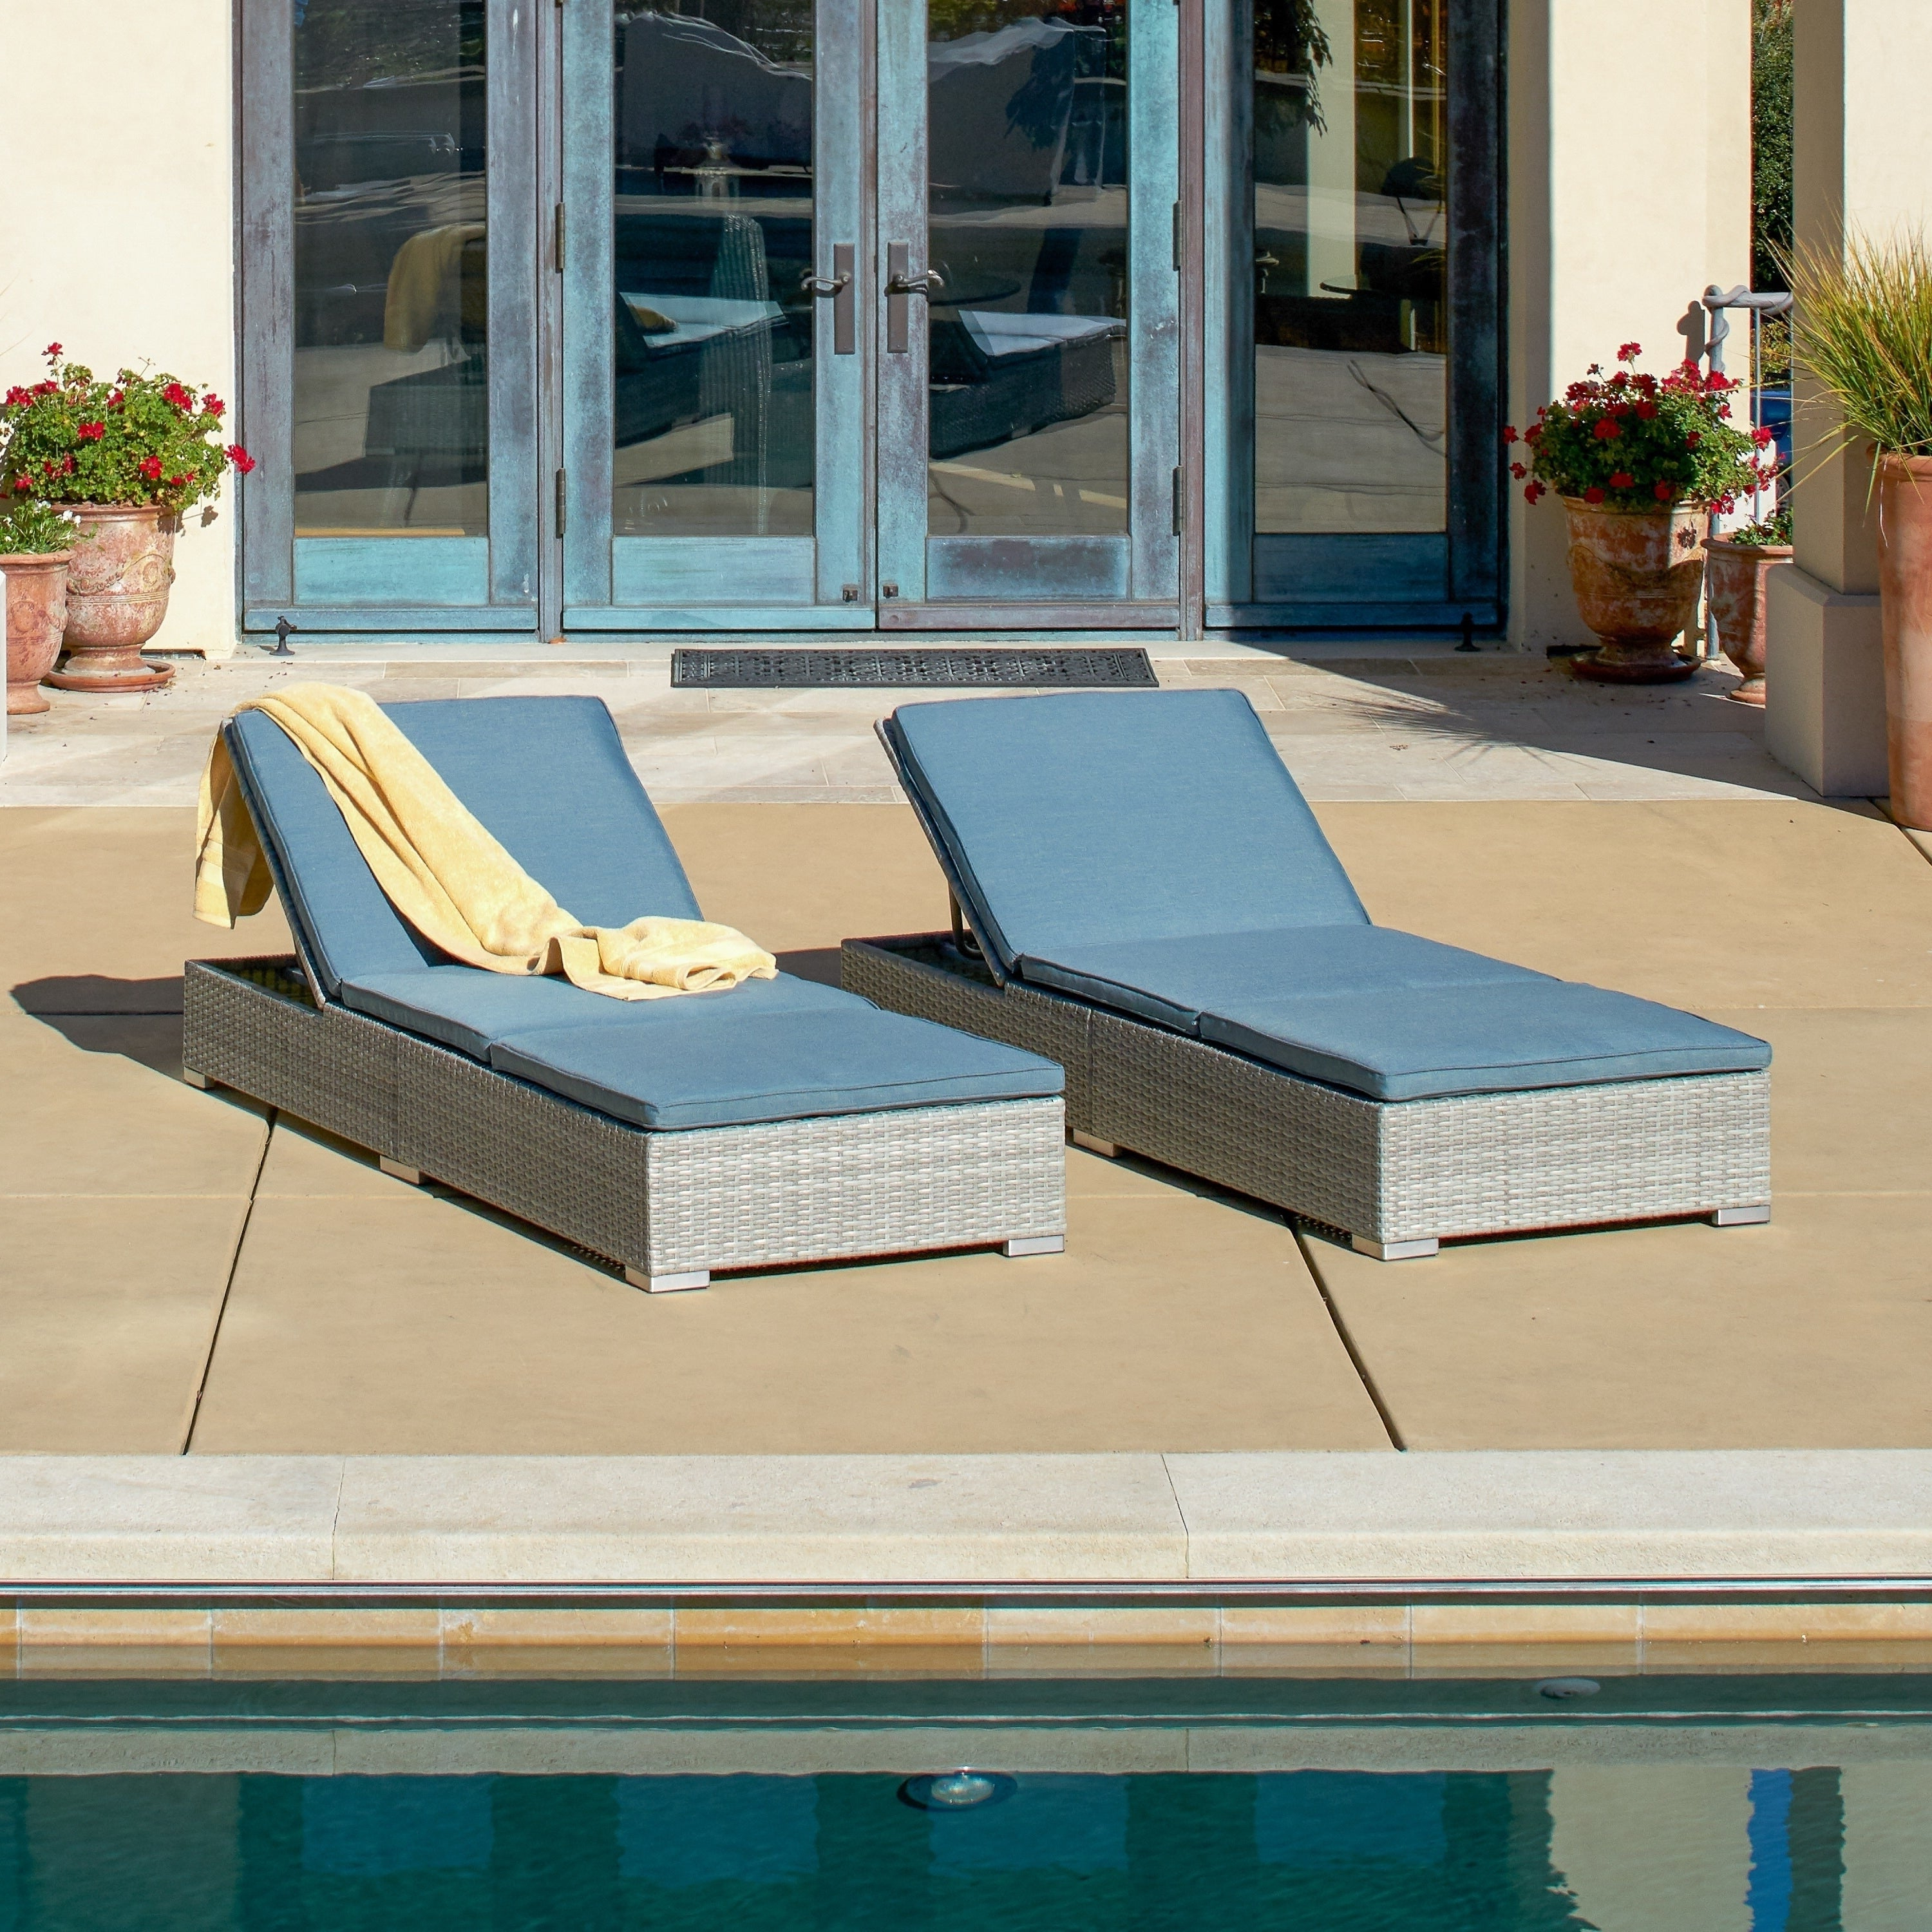 Corvus Outdoor Wicker Adjustable Chaise Lounges With Cushions (Set Of 2) For Well Liked White Wicker Adjustable Chaise Loungers With Cushions (View 3 of 25)